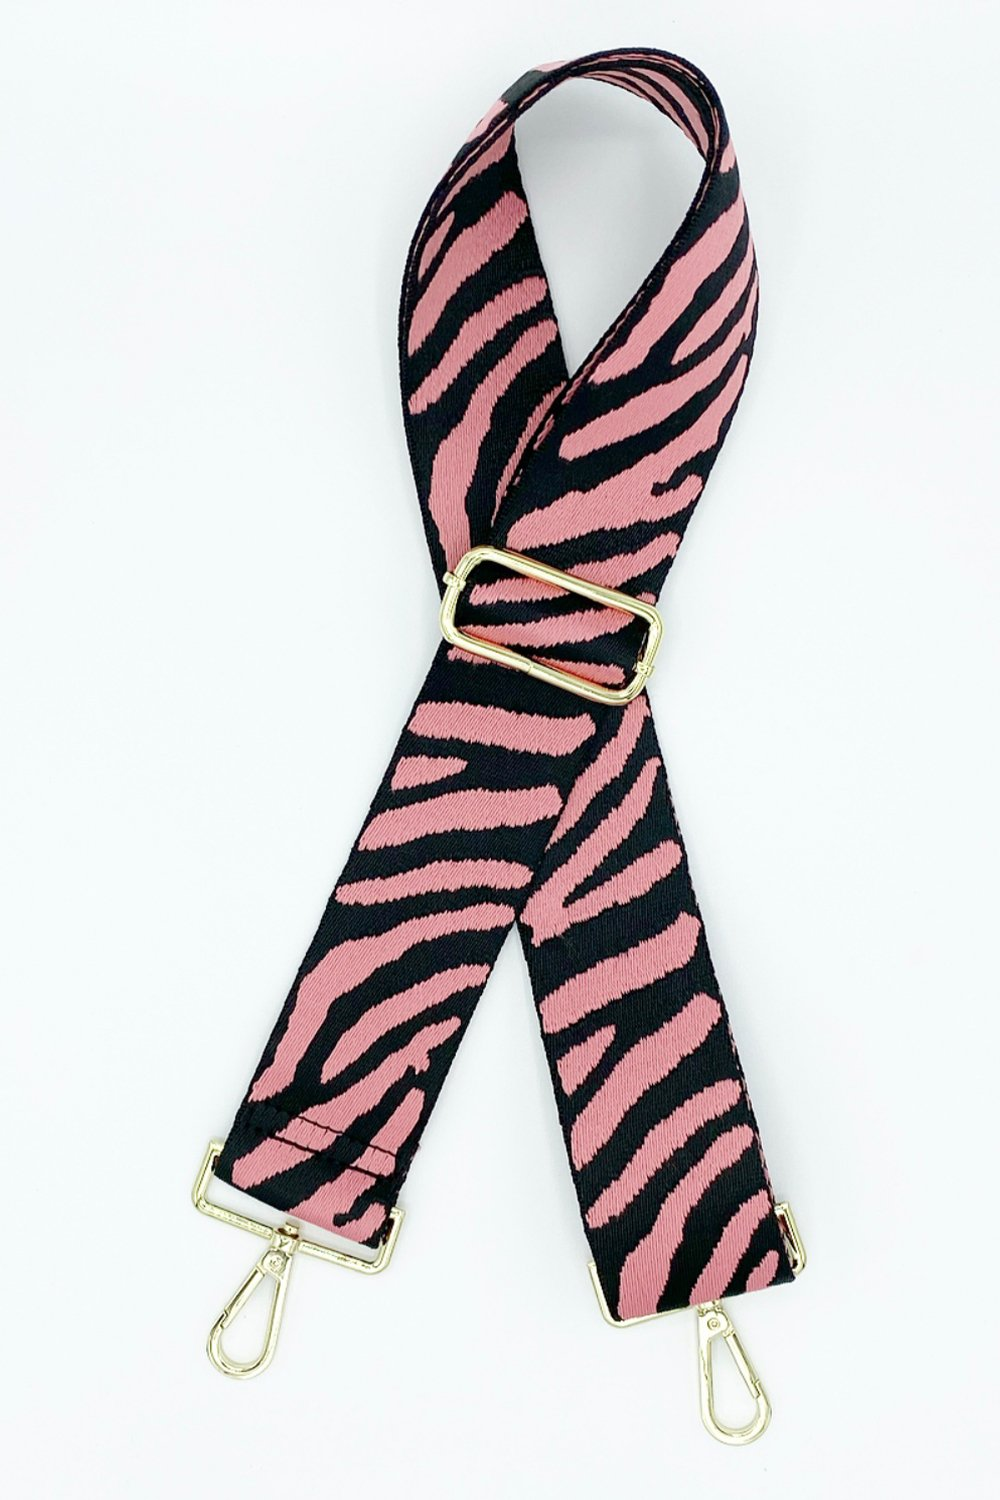 Black & Pink Zebra Bag Strap